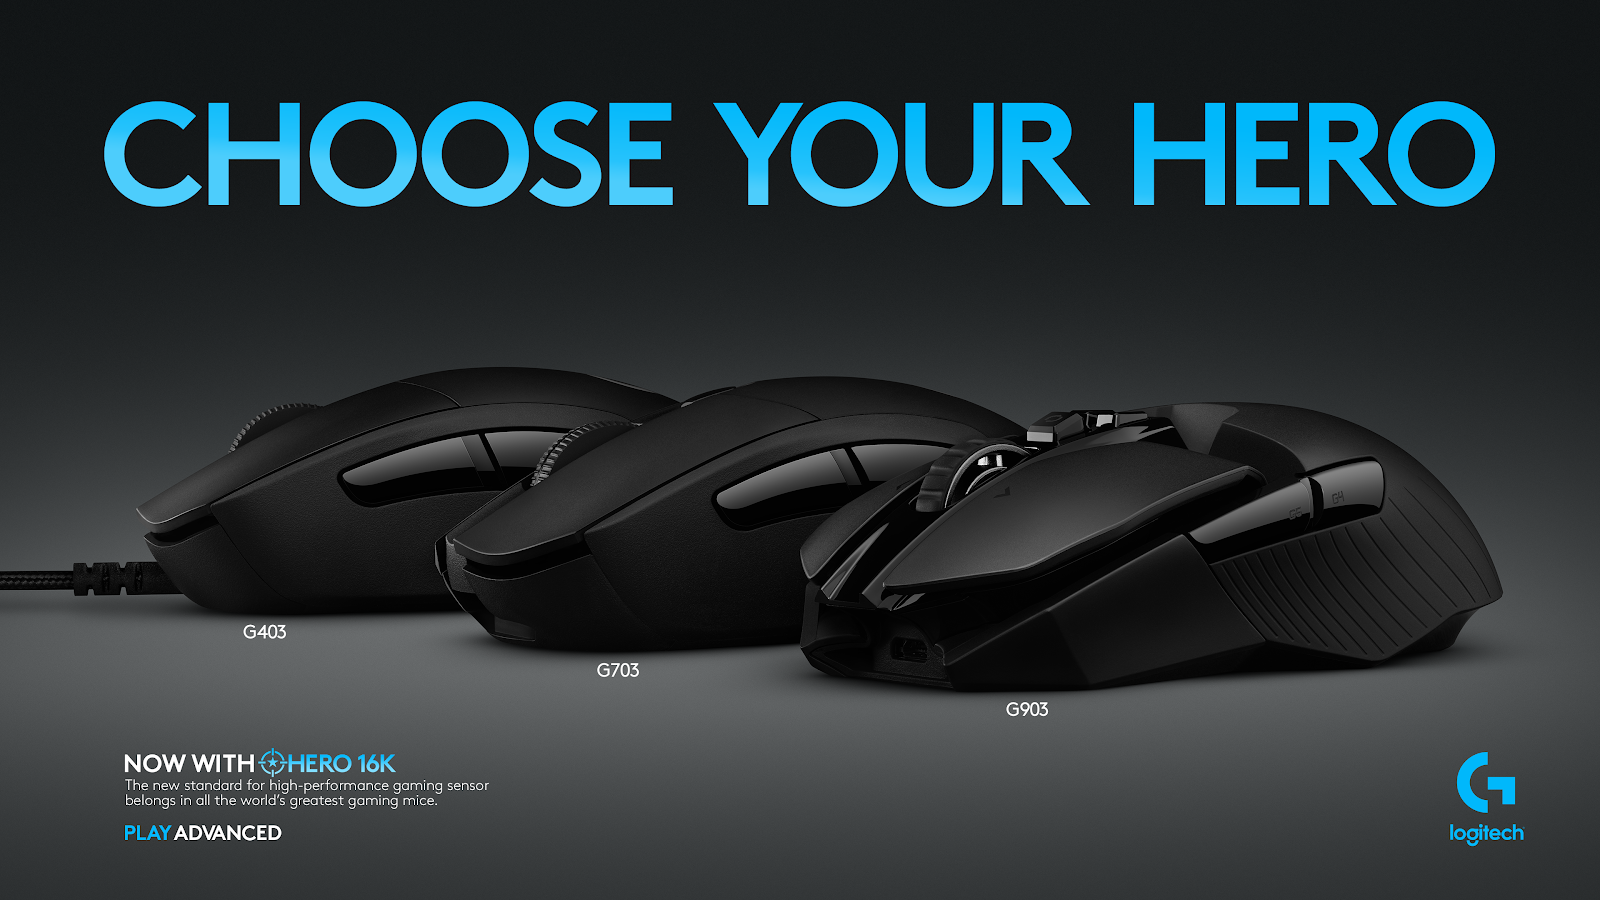 Three New Heroes Join The Logitech G Lineup | logi BLOG